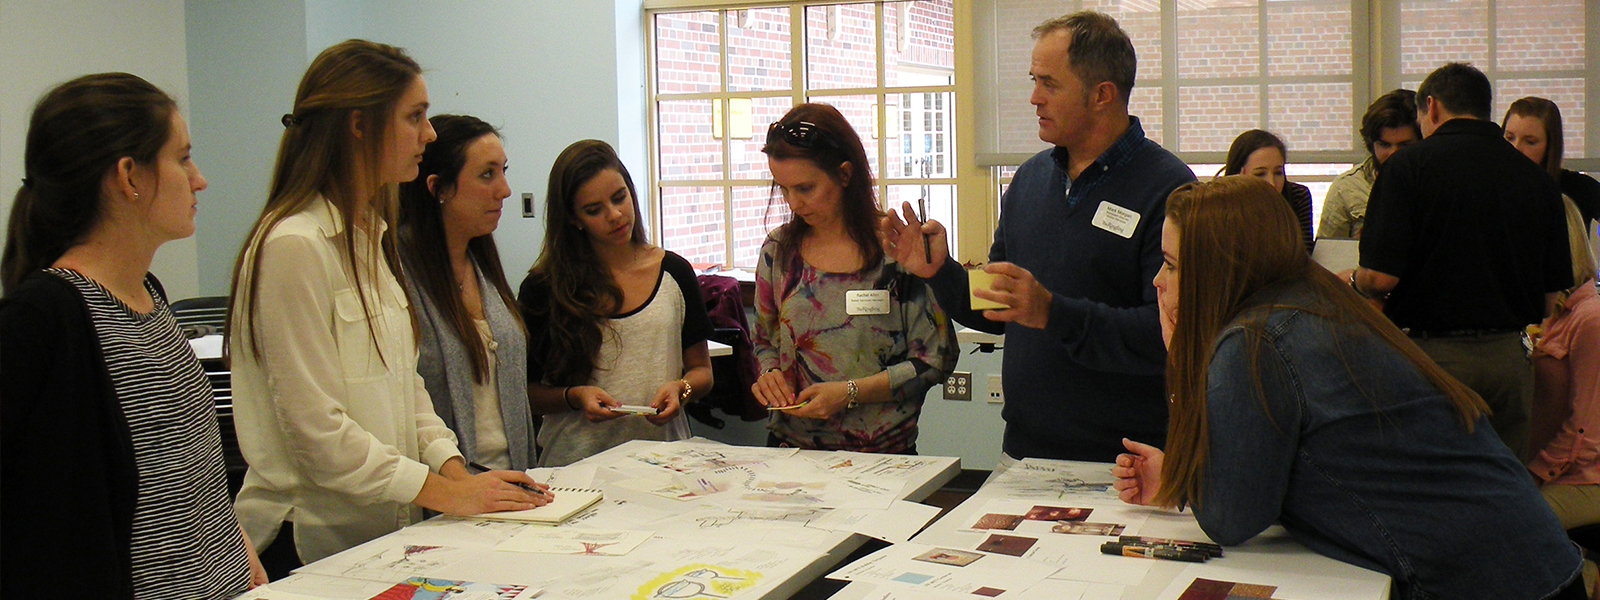 Fsu Department Of Interior Architecture And Design Undergraduate Program